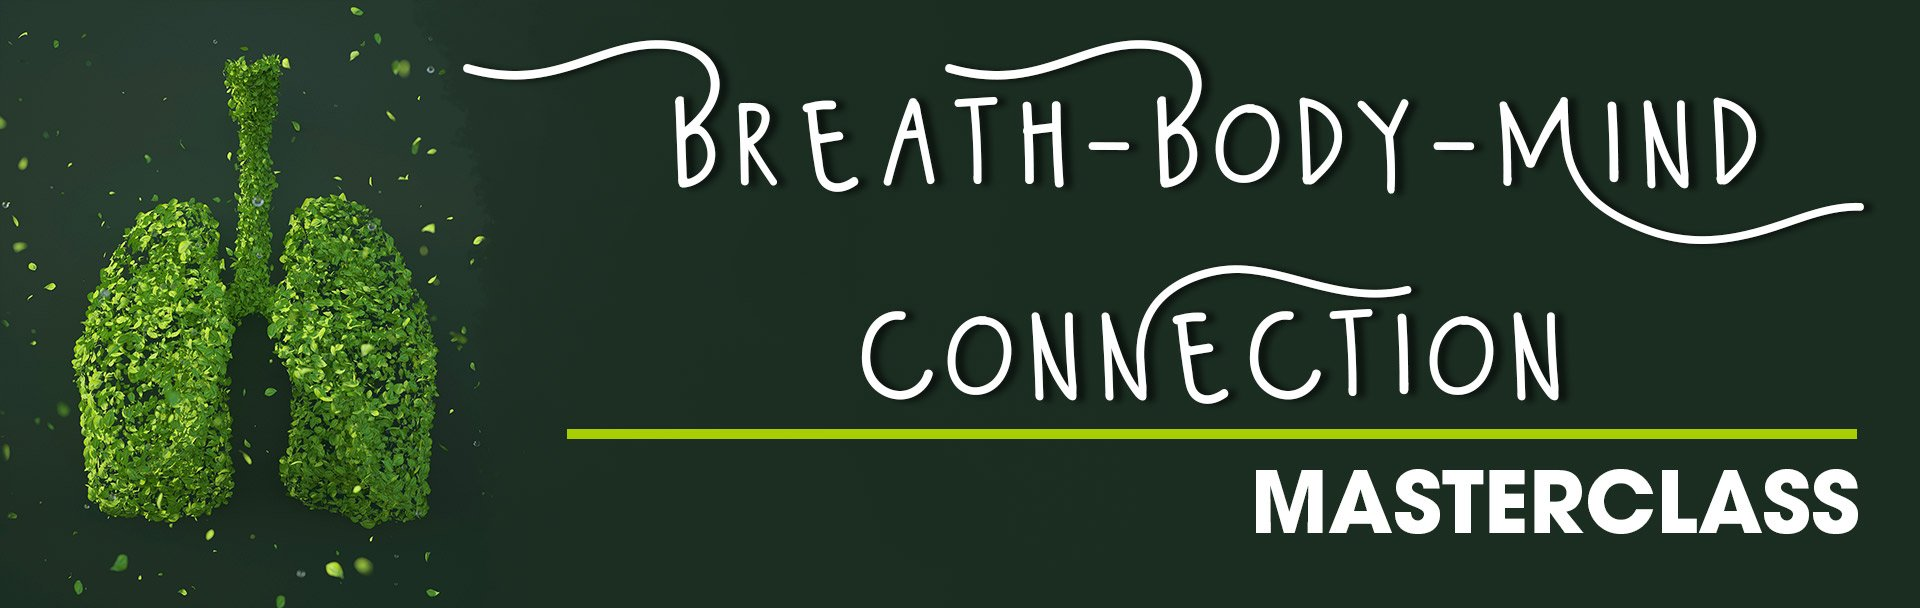 Sophie O'Brien Leads a 4-week Breath masterclass at the Sir Arthur Conan Doyle Centre